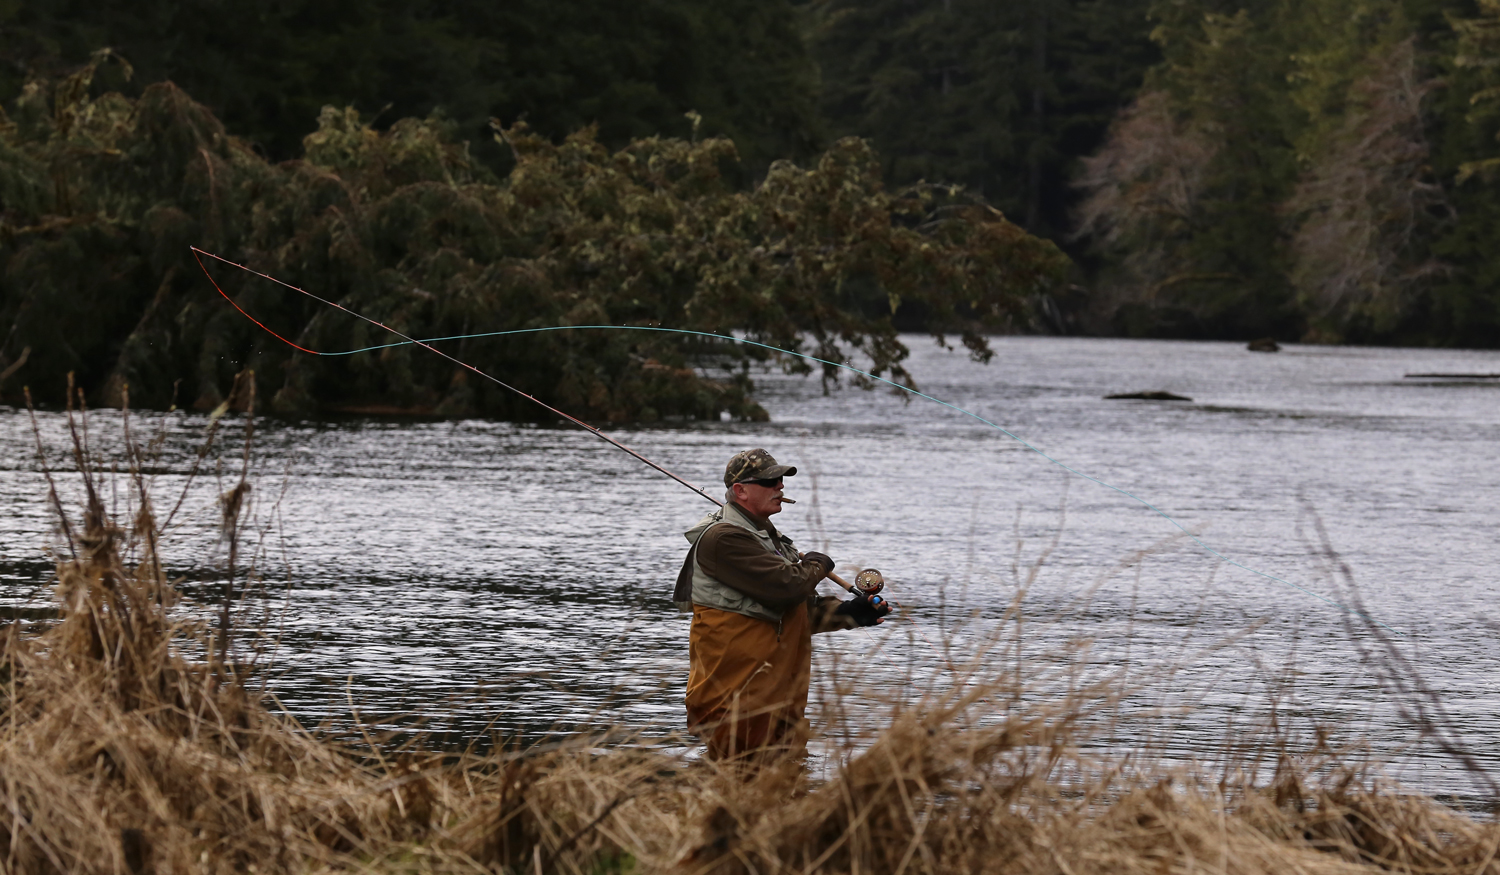 A fly fisherman in the Thorne River on Prince of Wales Island.